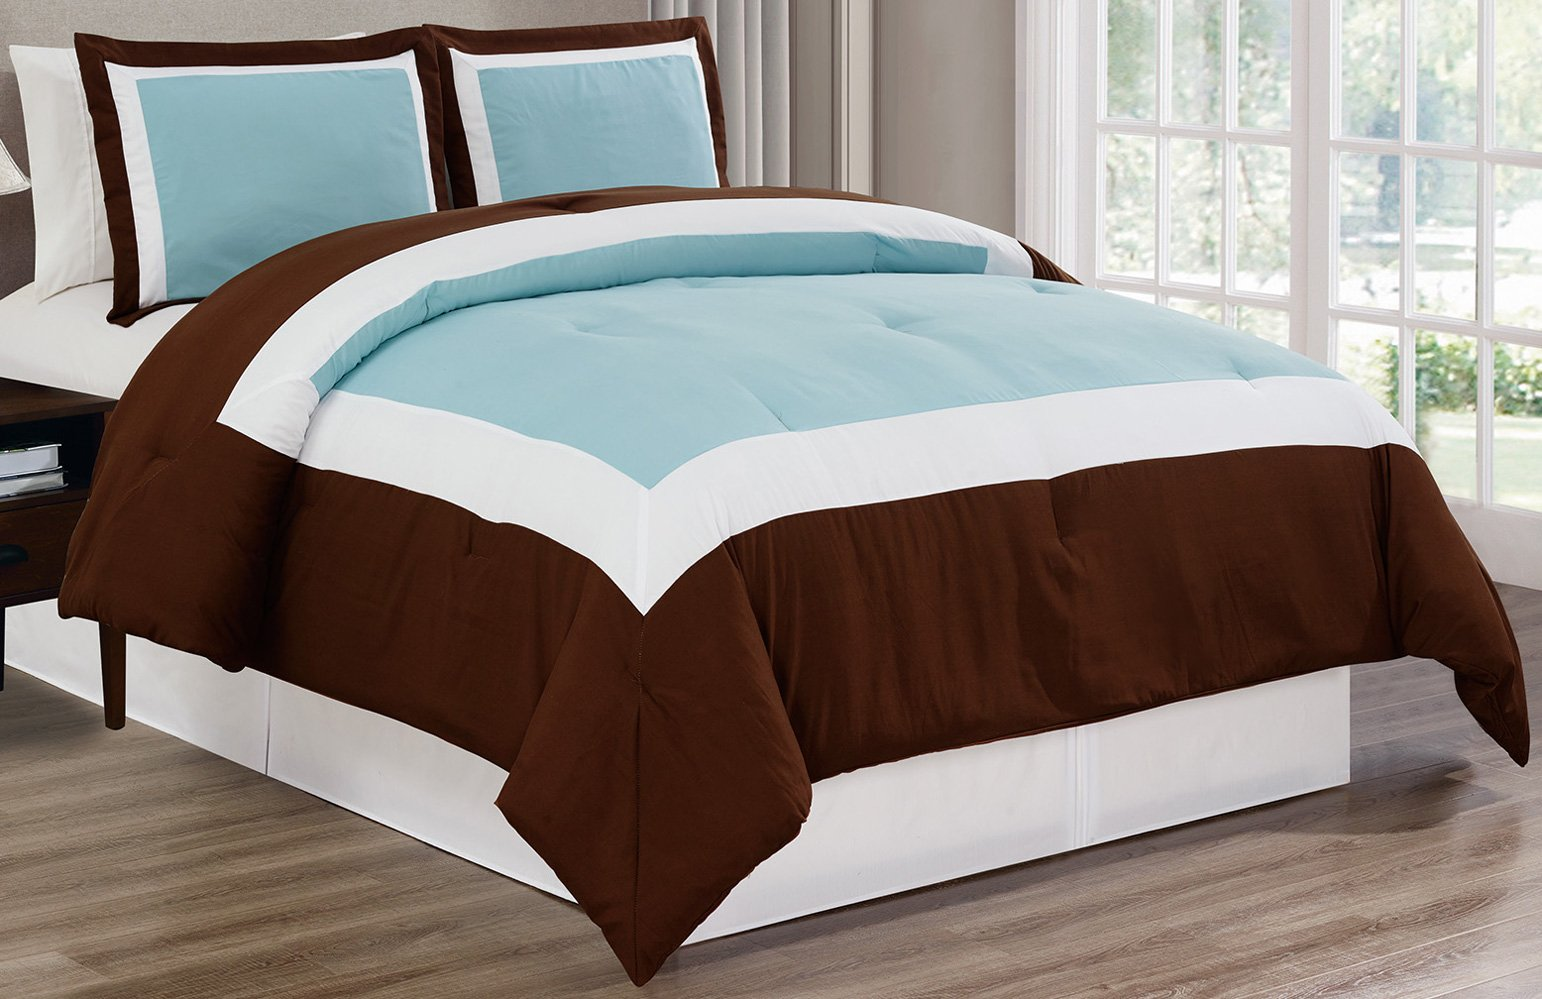 3 piece light blue brown white goose down alternative color block comforter set